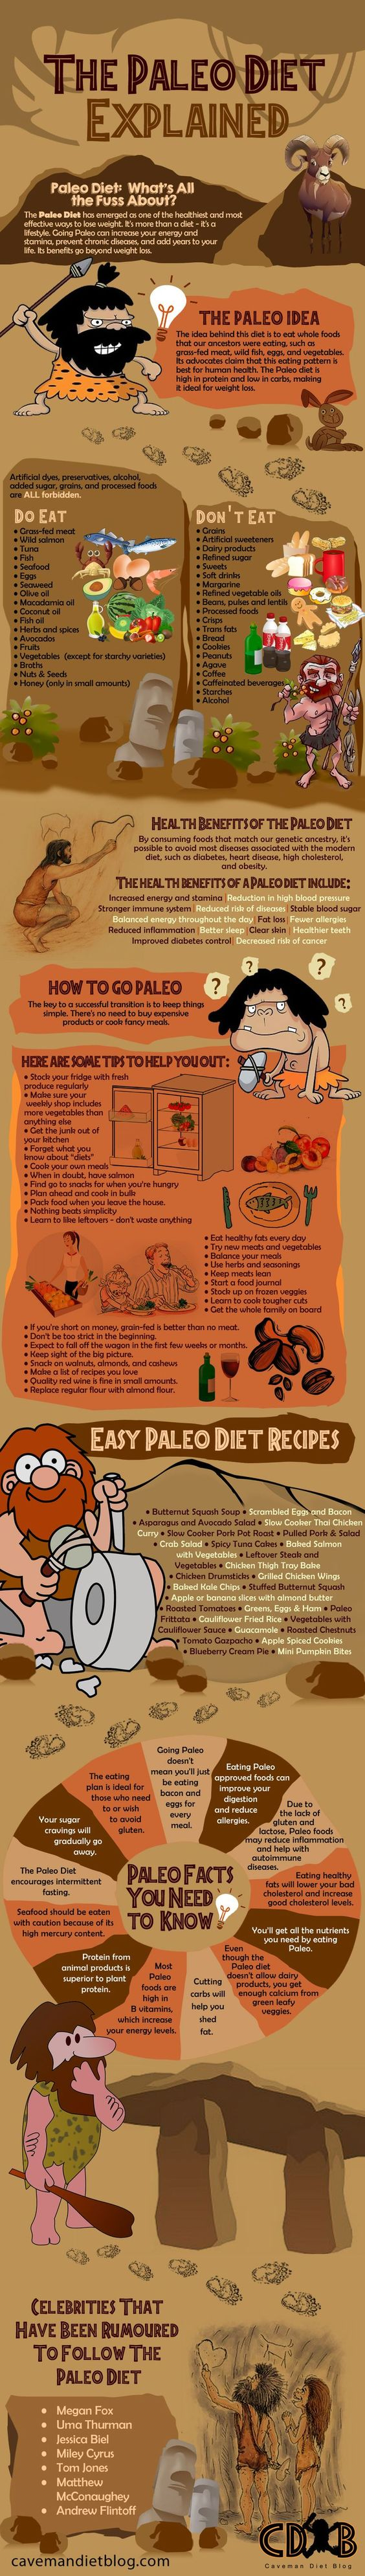 The Paleo Diet Explained - Fantastic infographic full of information about the…